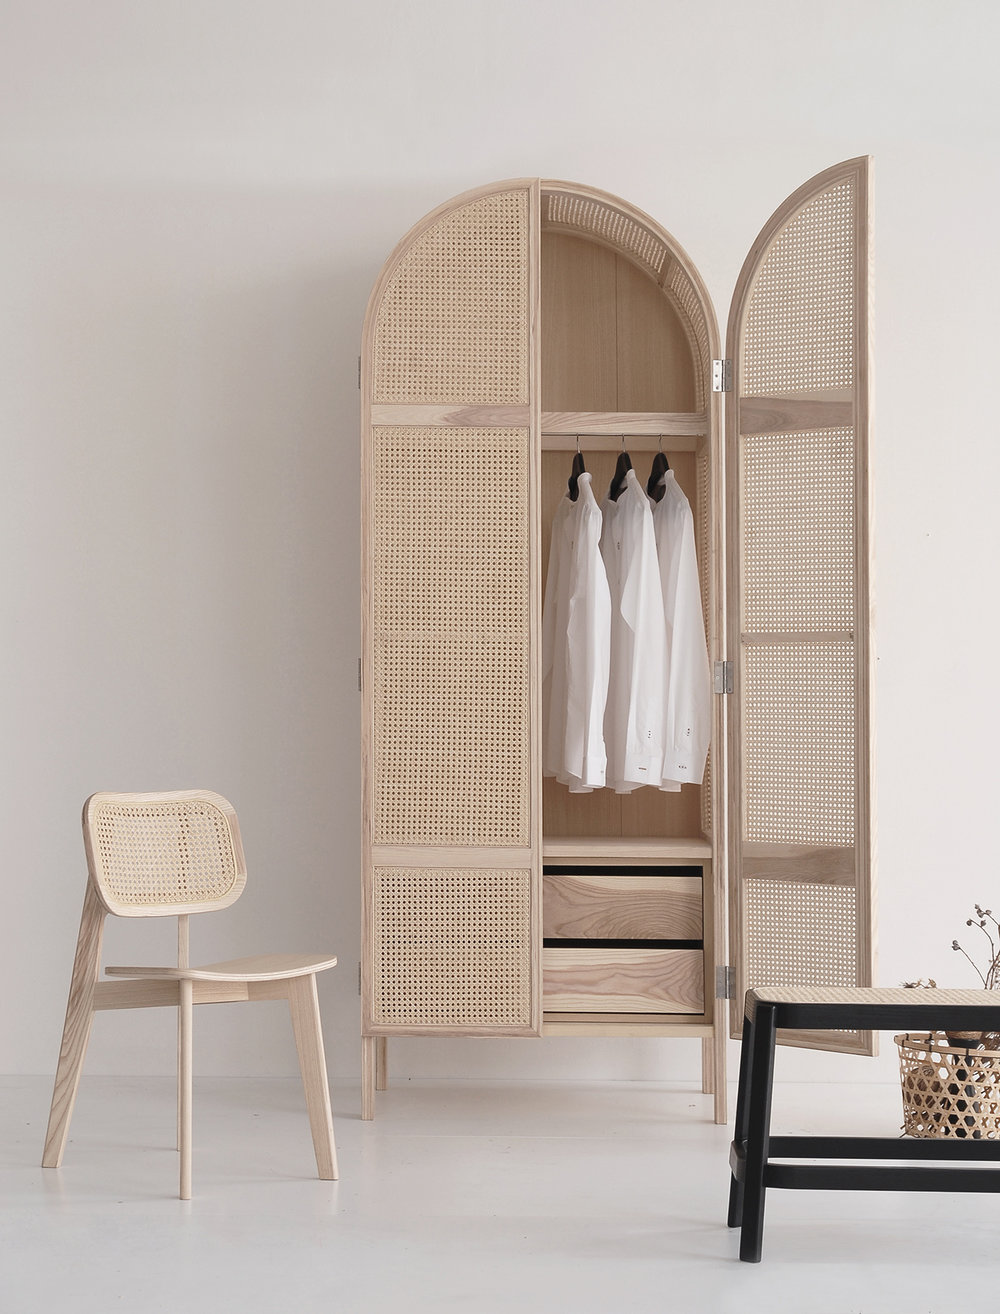 Curio cane furniture by Atelier 2+ available from Clickon Furniture